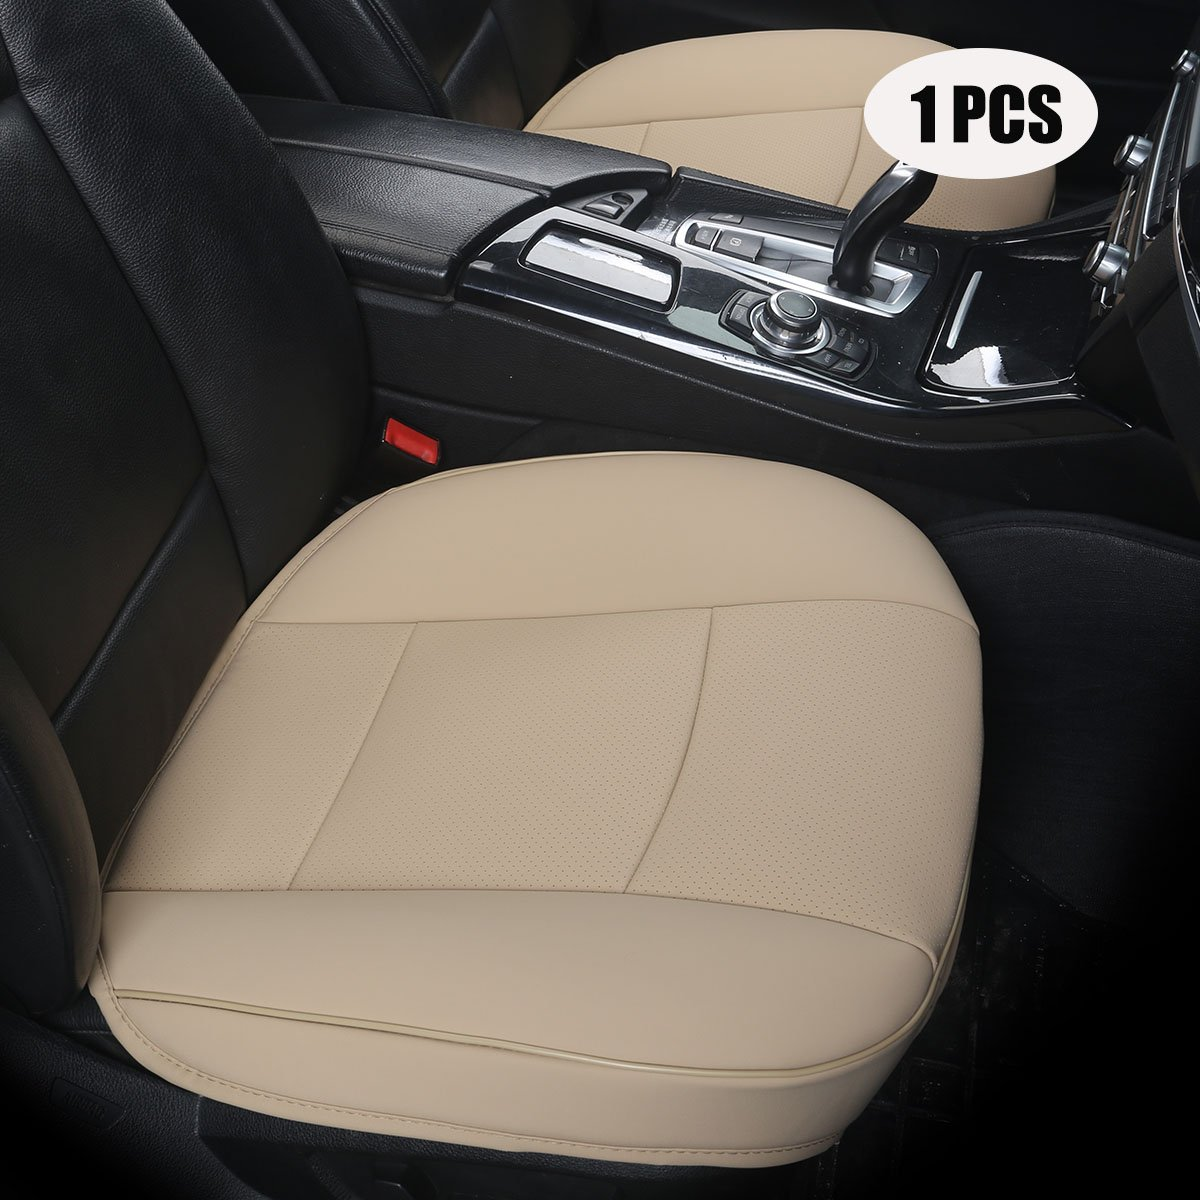 2 PCS Beige - no Charcoal 2PCS Driver and Passenger Seat Cover PU Leather Seat Covers Universal Car Seat Cover Front Seat Protector Fit Most Sedans /&Truck /&SUV EDEALYN